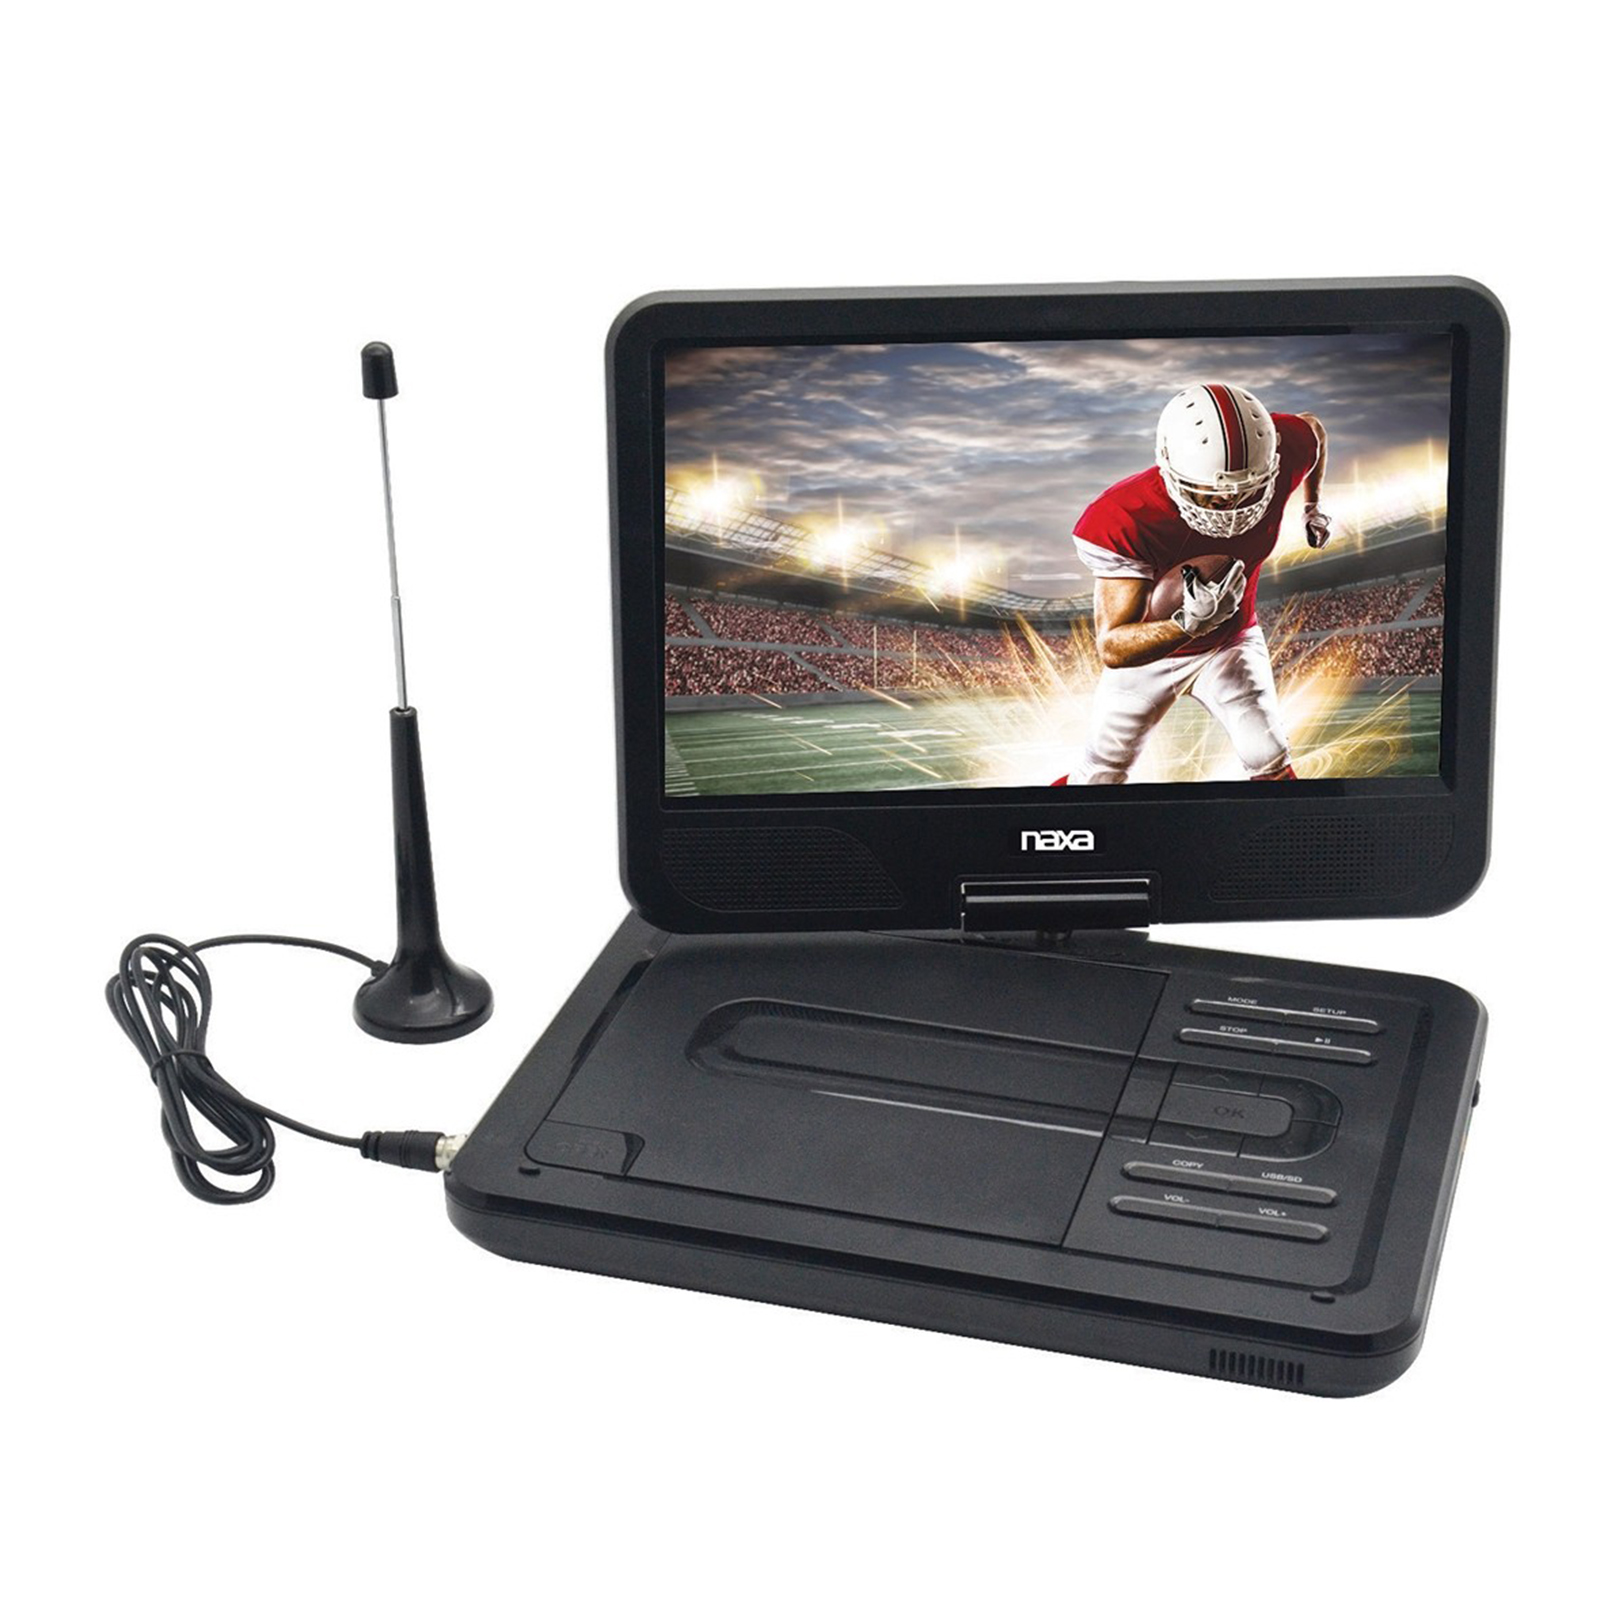 NAXA NPDT-1000 10' TFT LCD Swivel Screen Portable DVD Player with TV, USB/SD/MMC Inputs